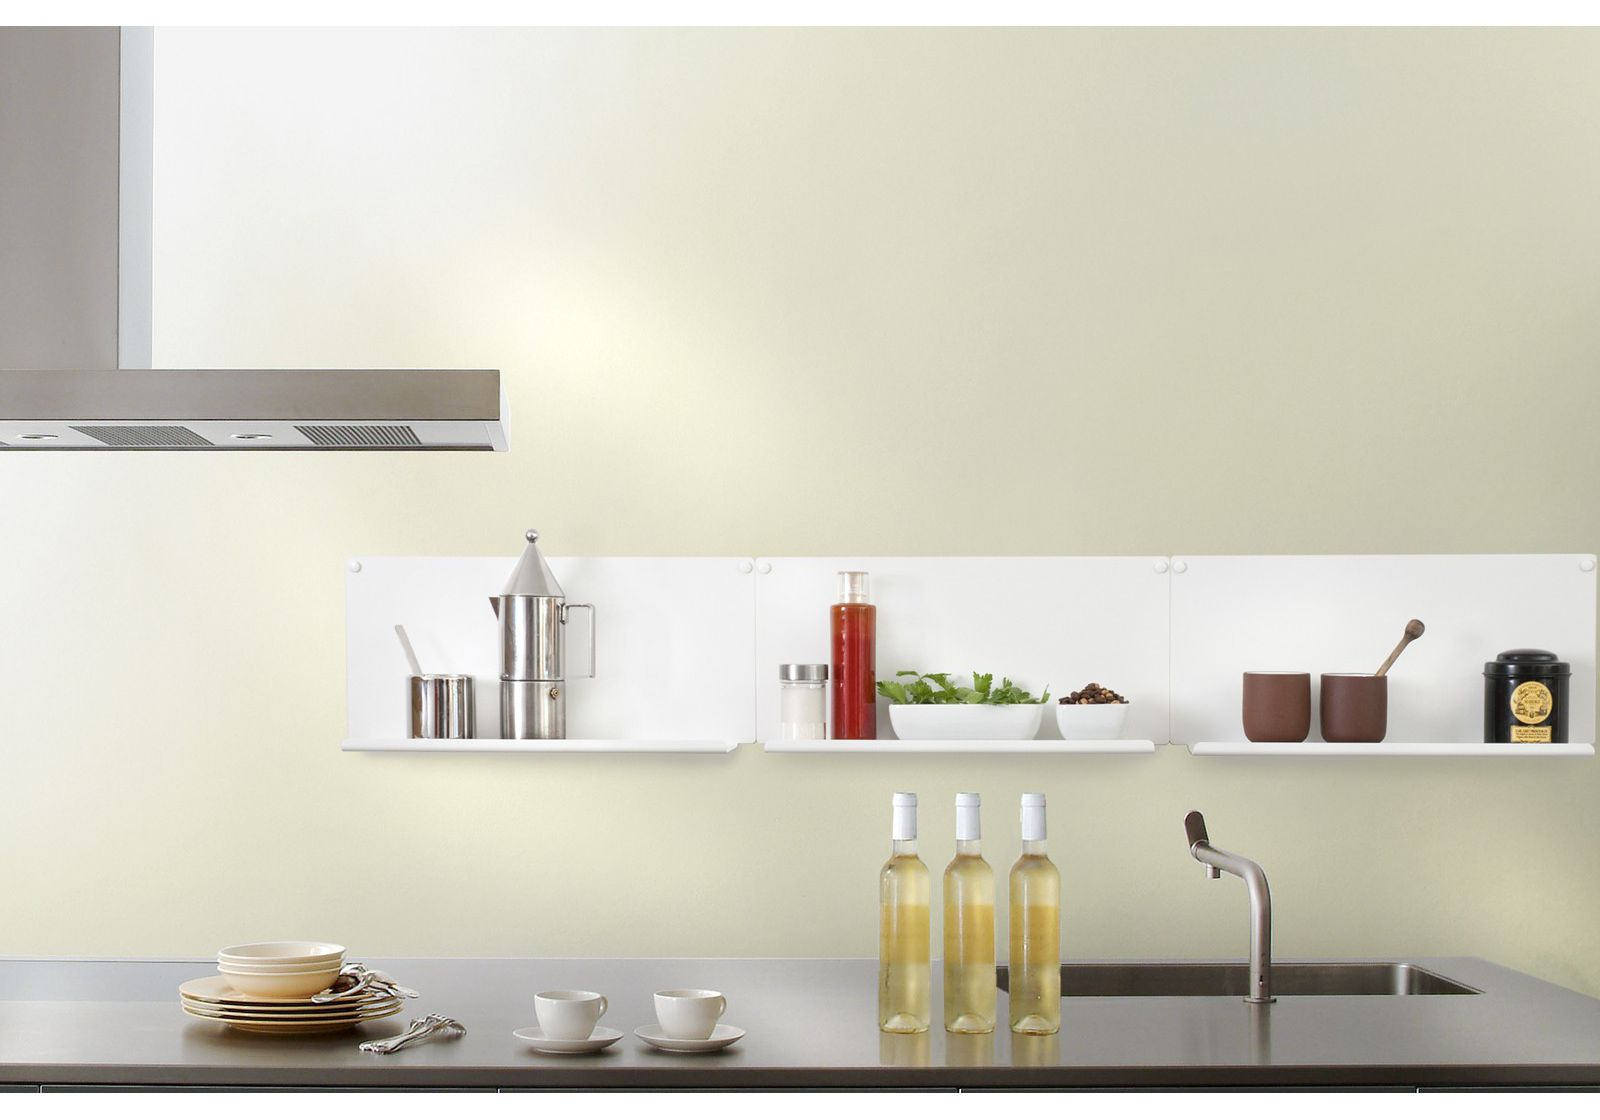 Cuisine etagere murale id es de d coration int rieure for Des idees de decoration interieure